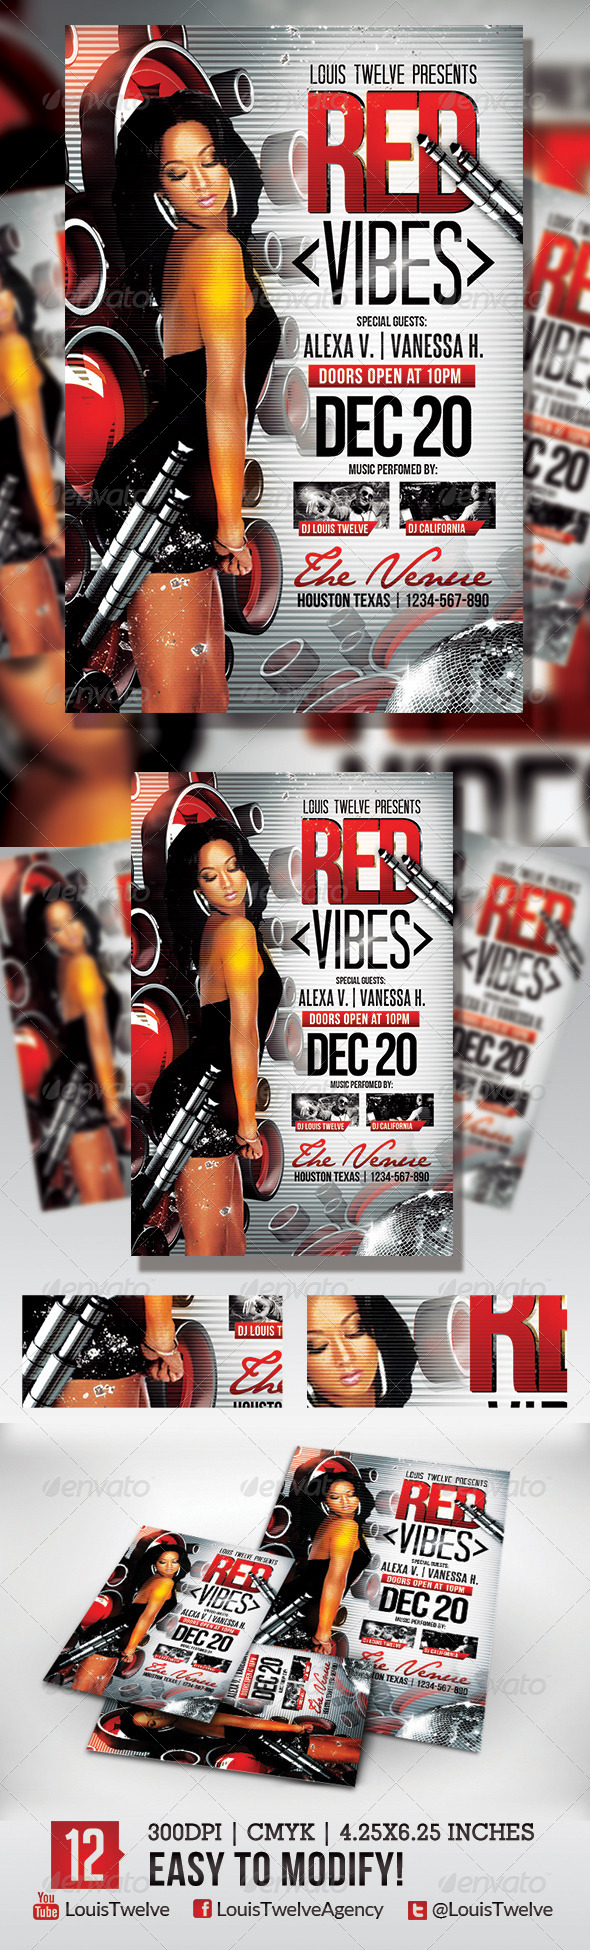 GraphicRiver Red Vibes Flyer Template 5632824